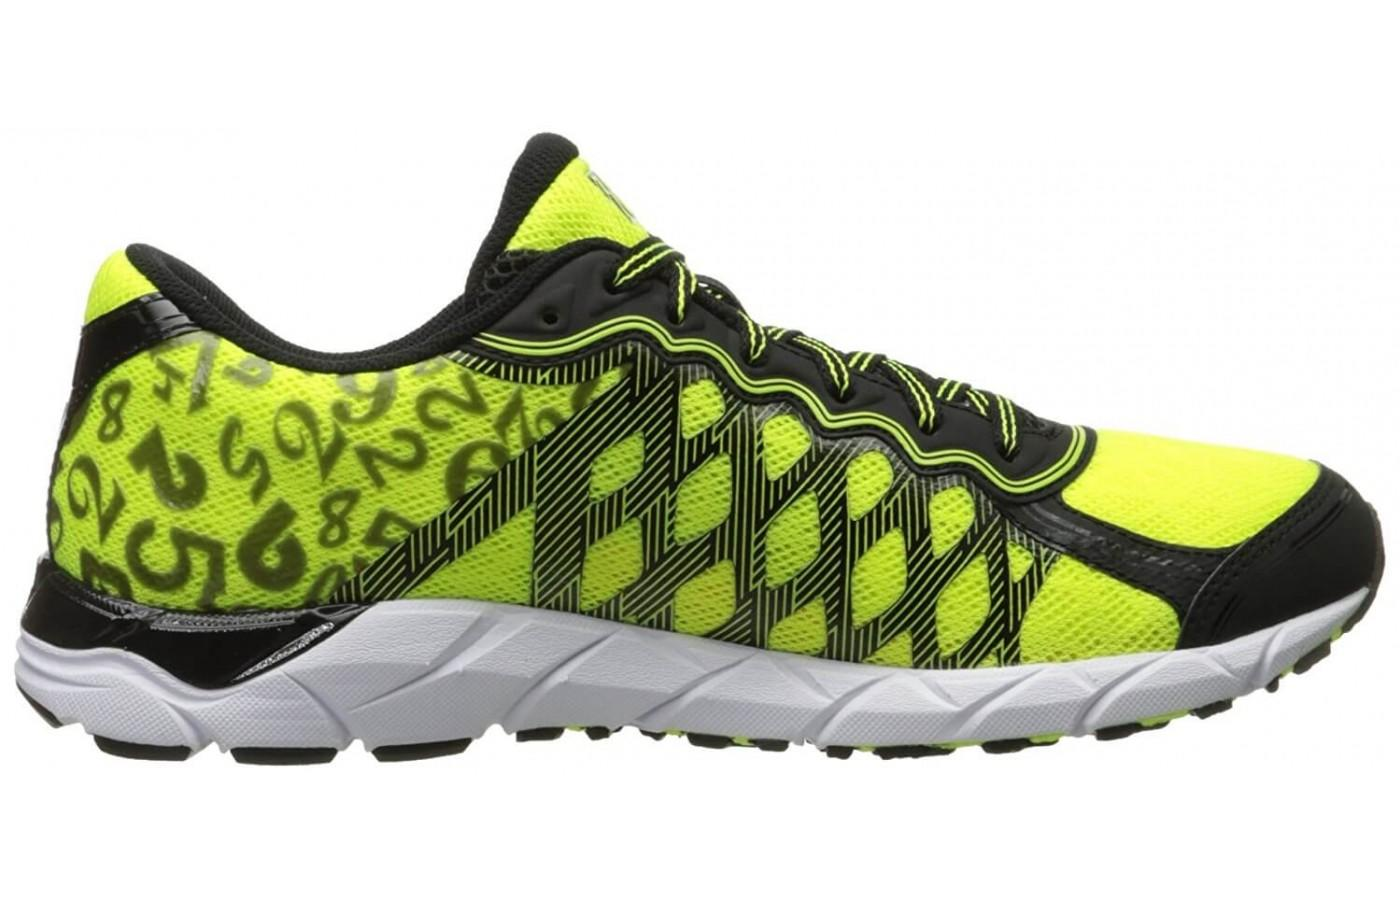 The 361 KGM2's midsole features three layers of midsole cushioning.